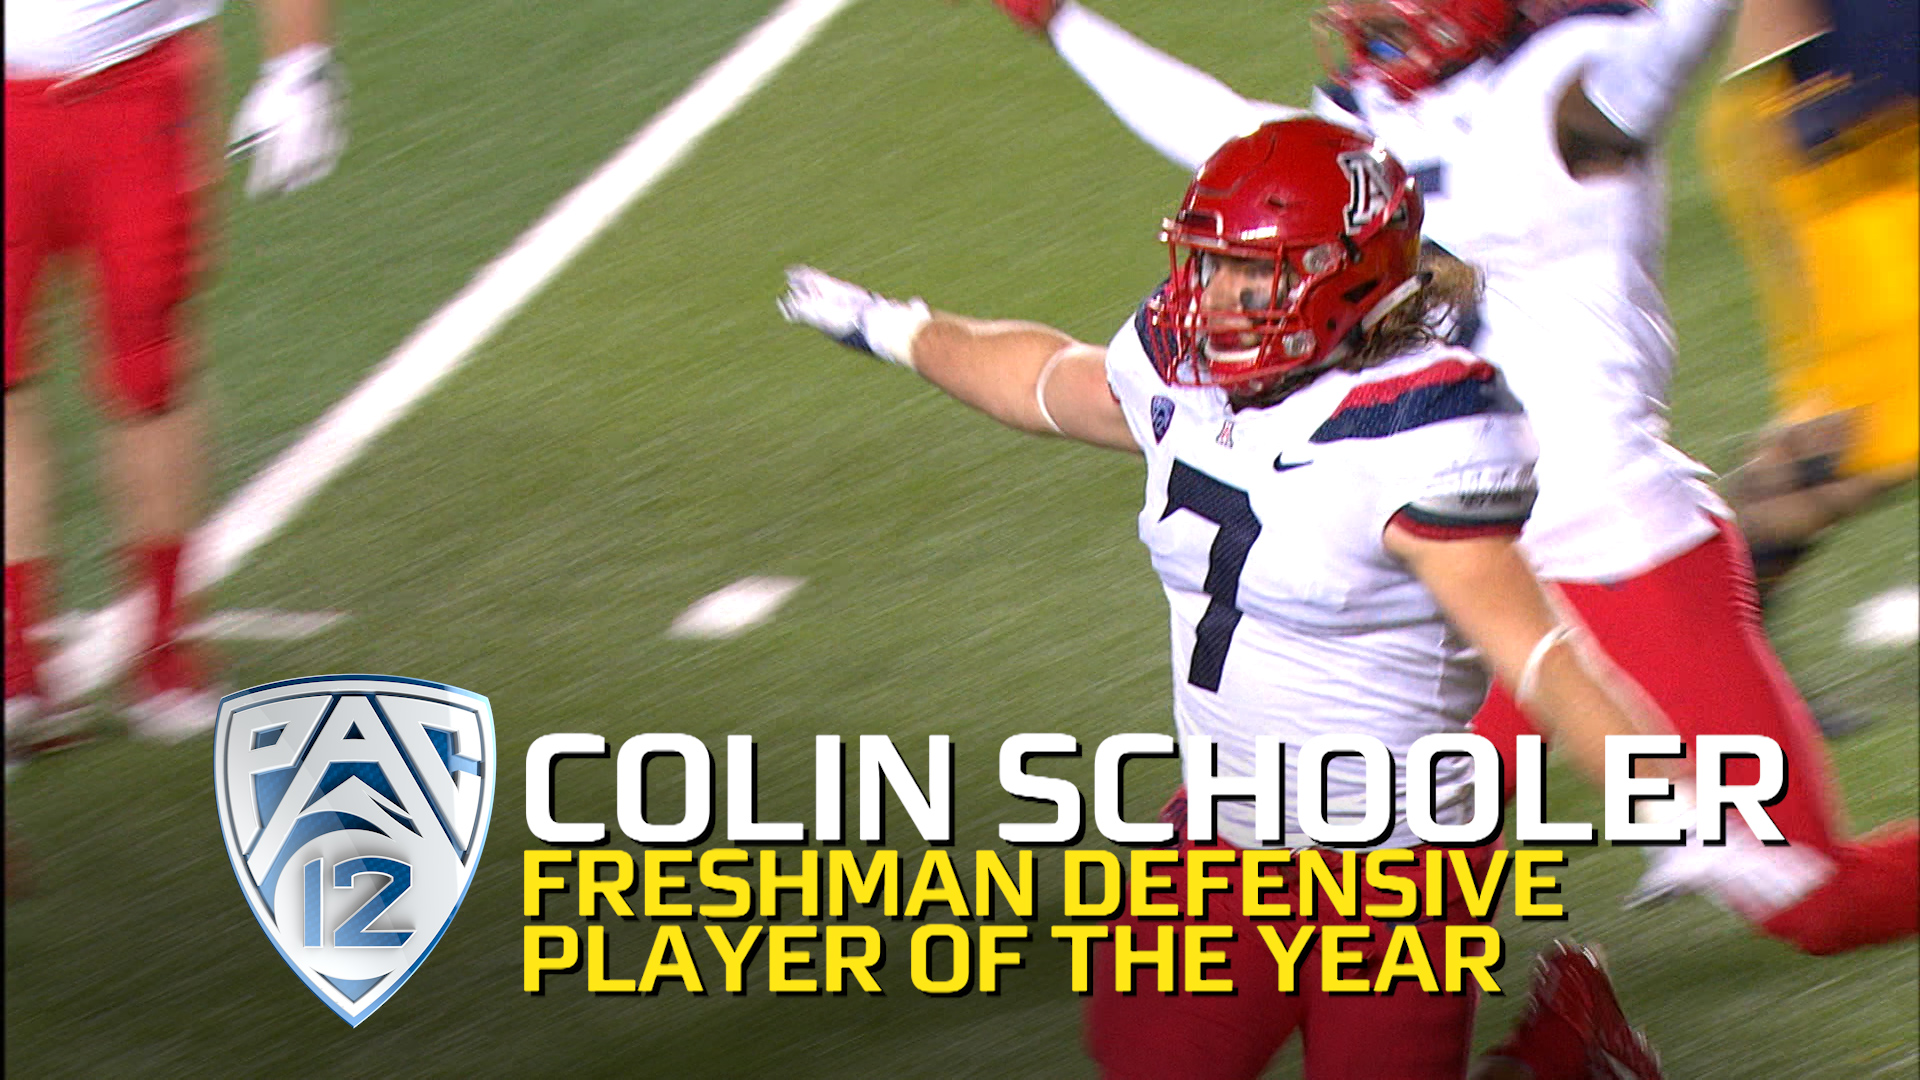 UA s Colin Schooler named Pac 12 Football Defensive Freshman of the Year